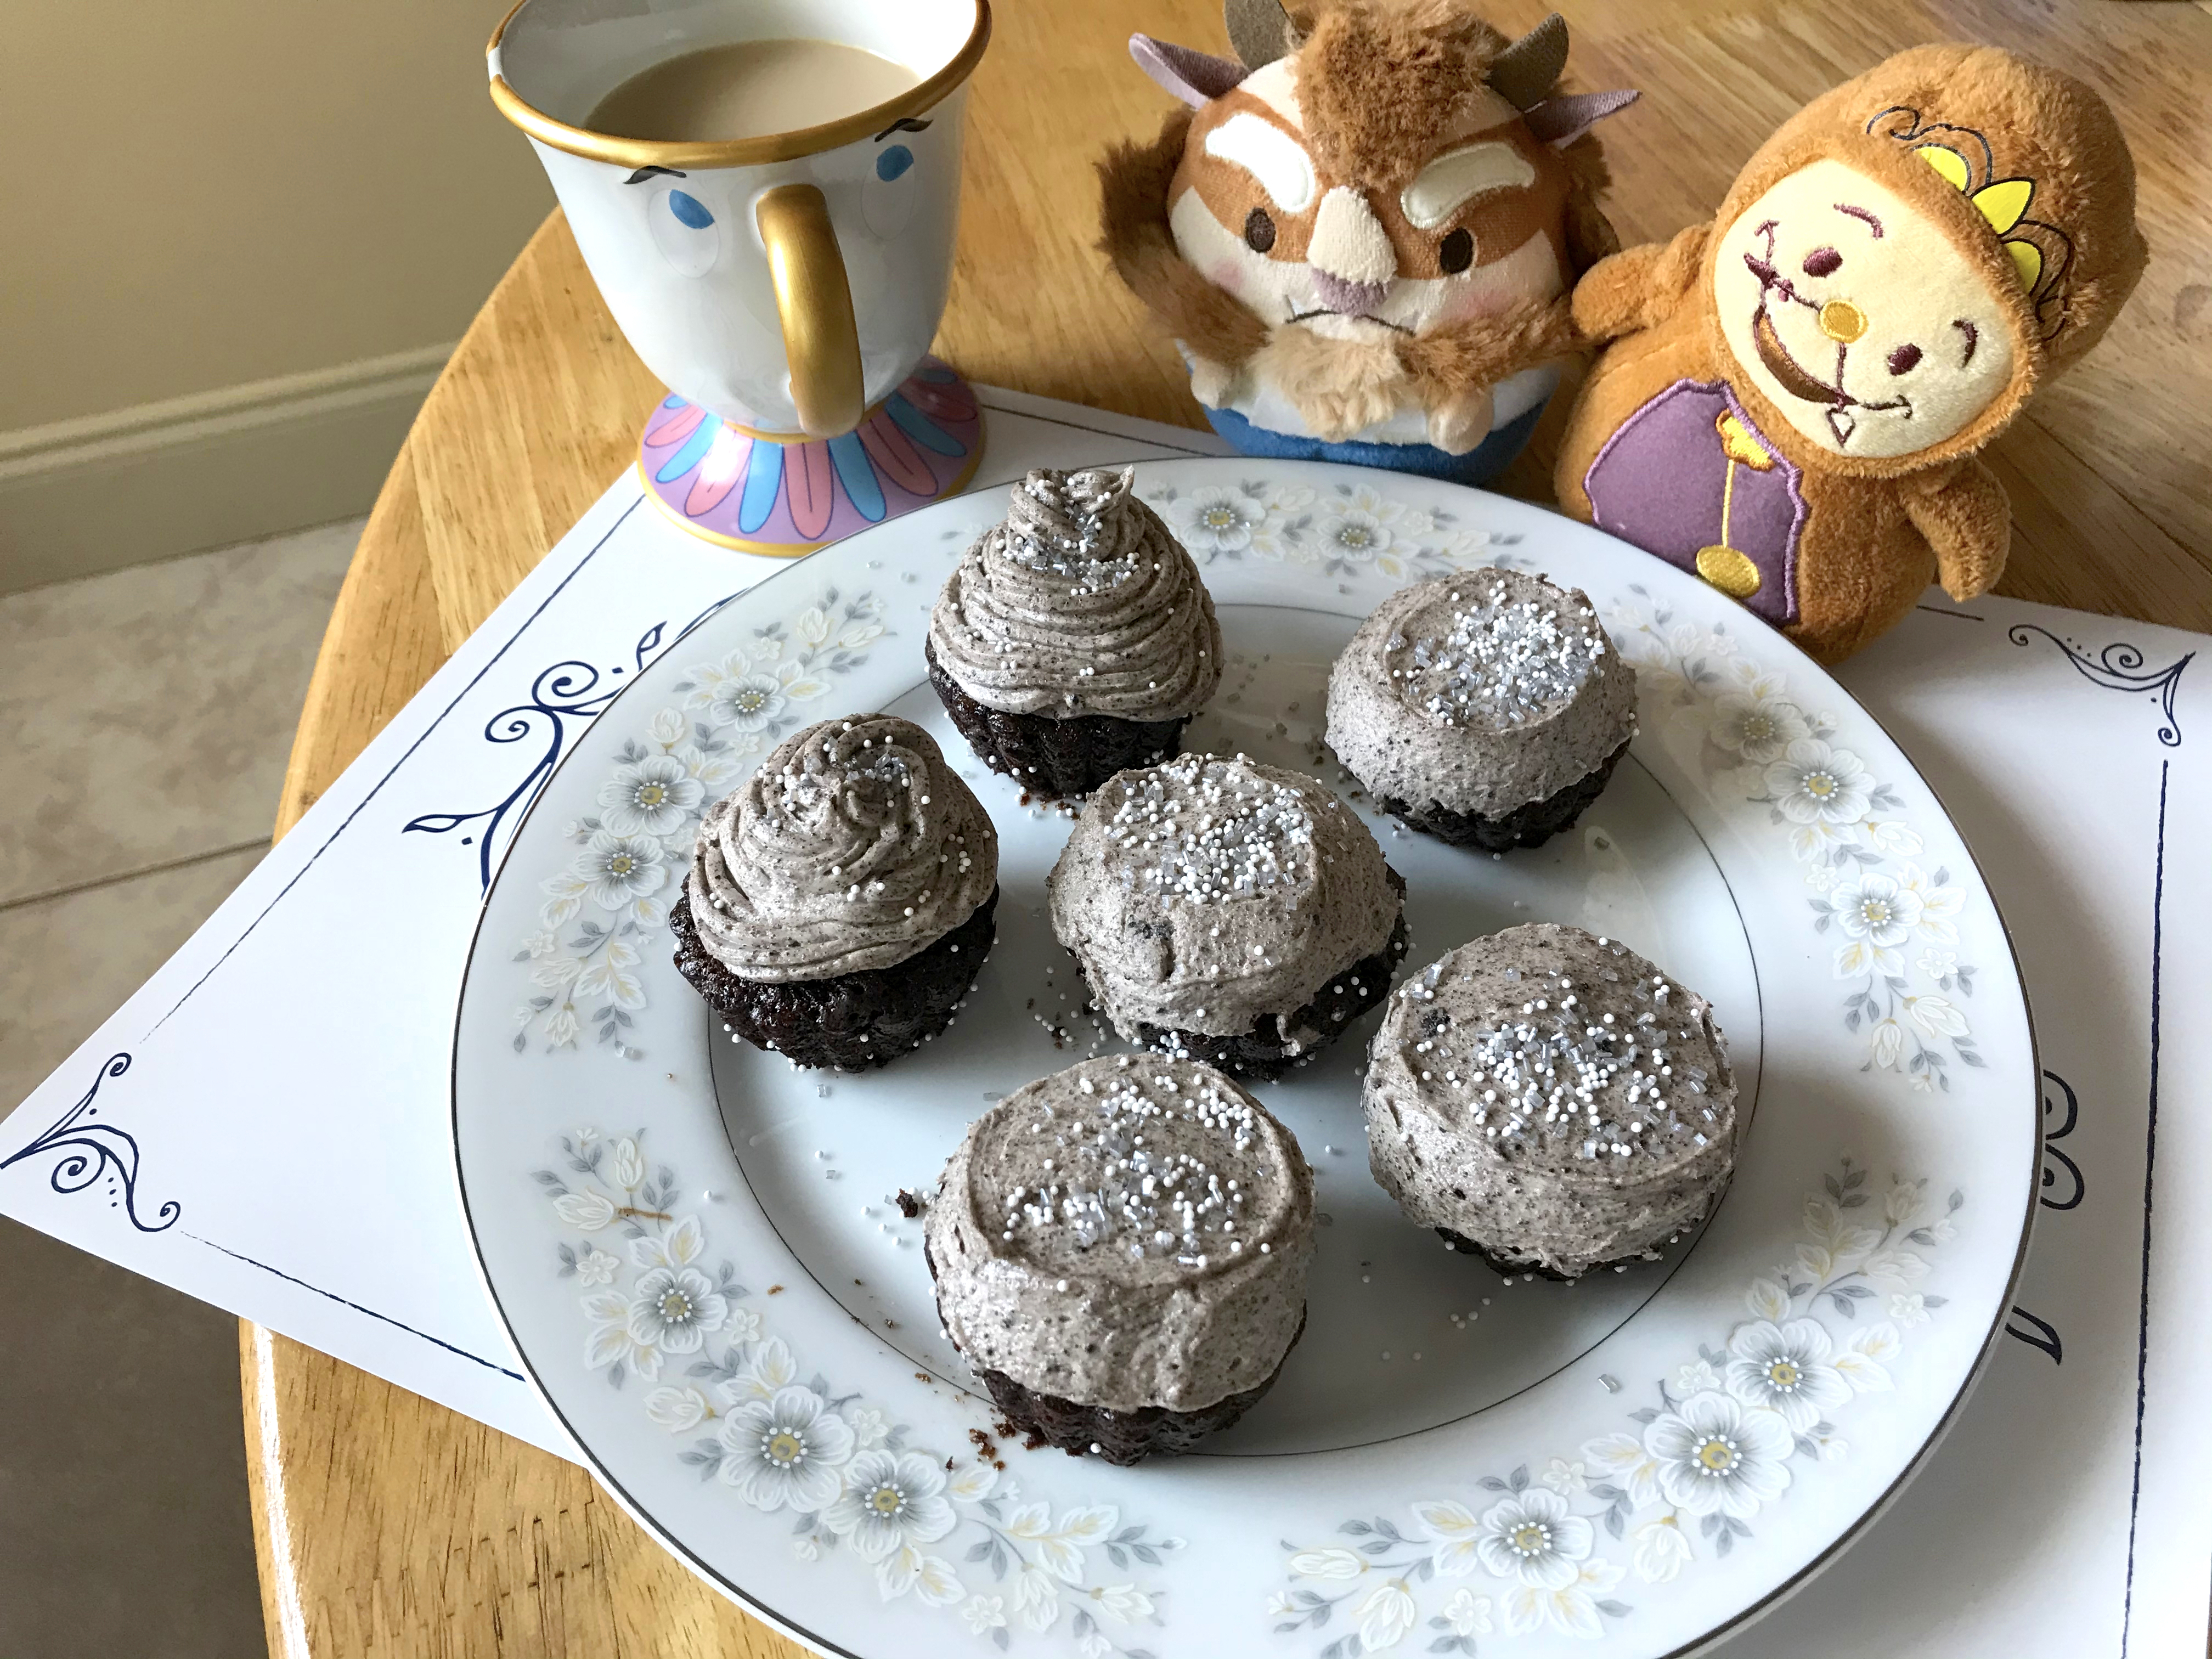 Recipe Try The Grey Stuff It S Delicious With This Disney Parks Inspired Cupcake And Mini Cake Recipe Wdw News Today